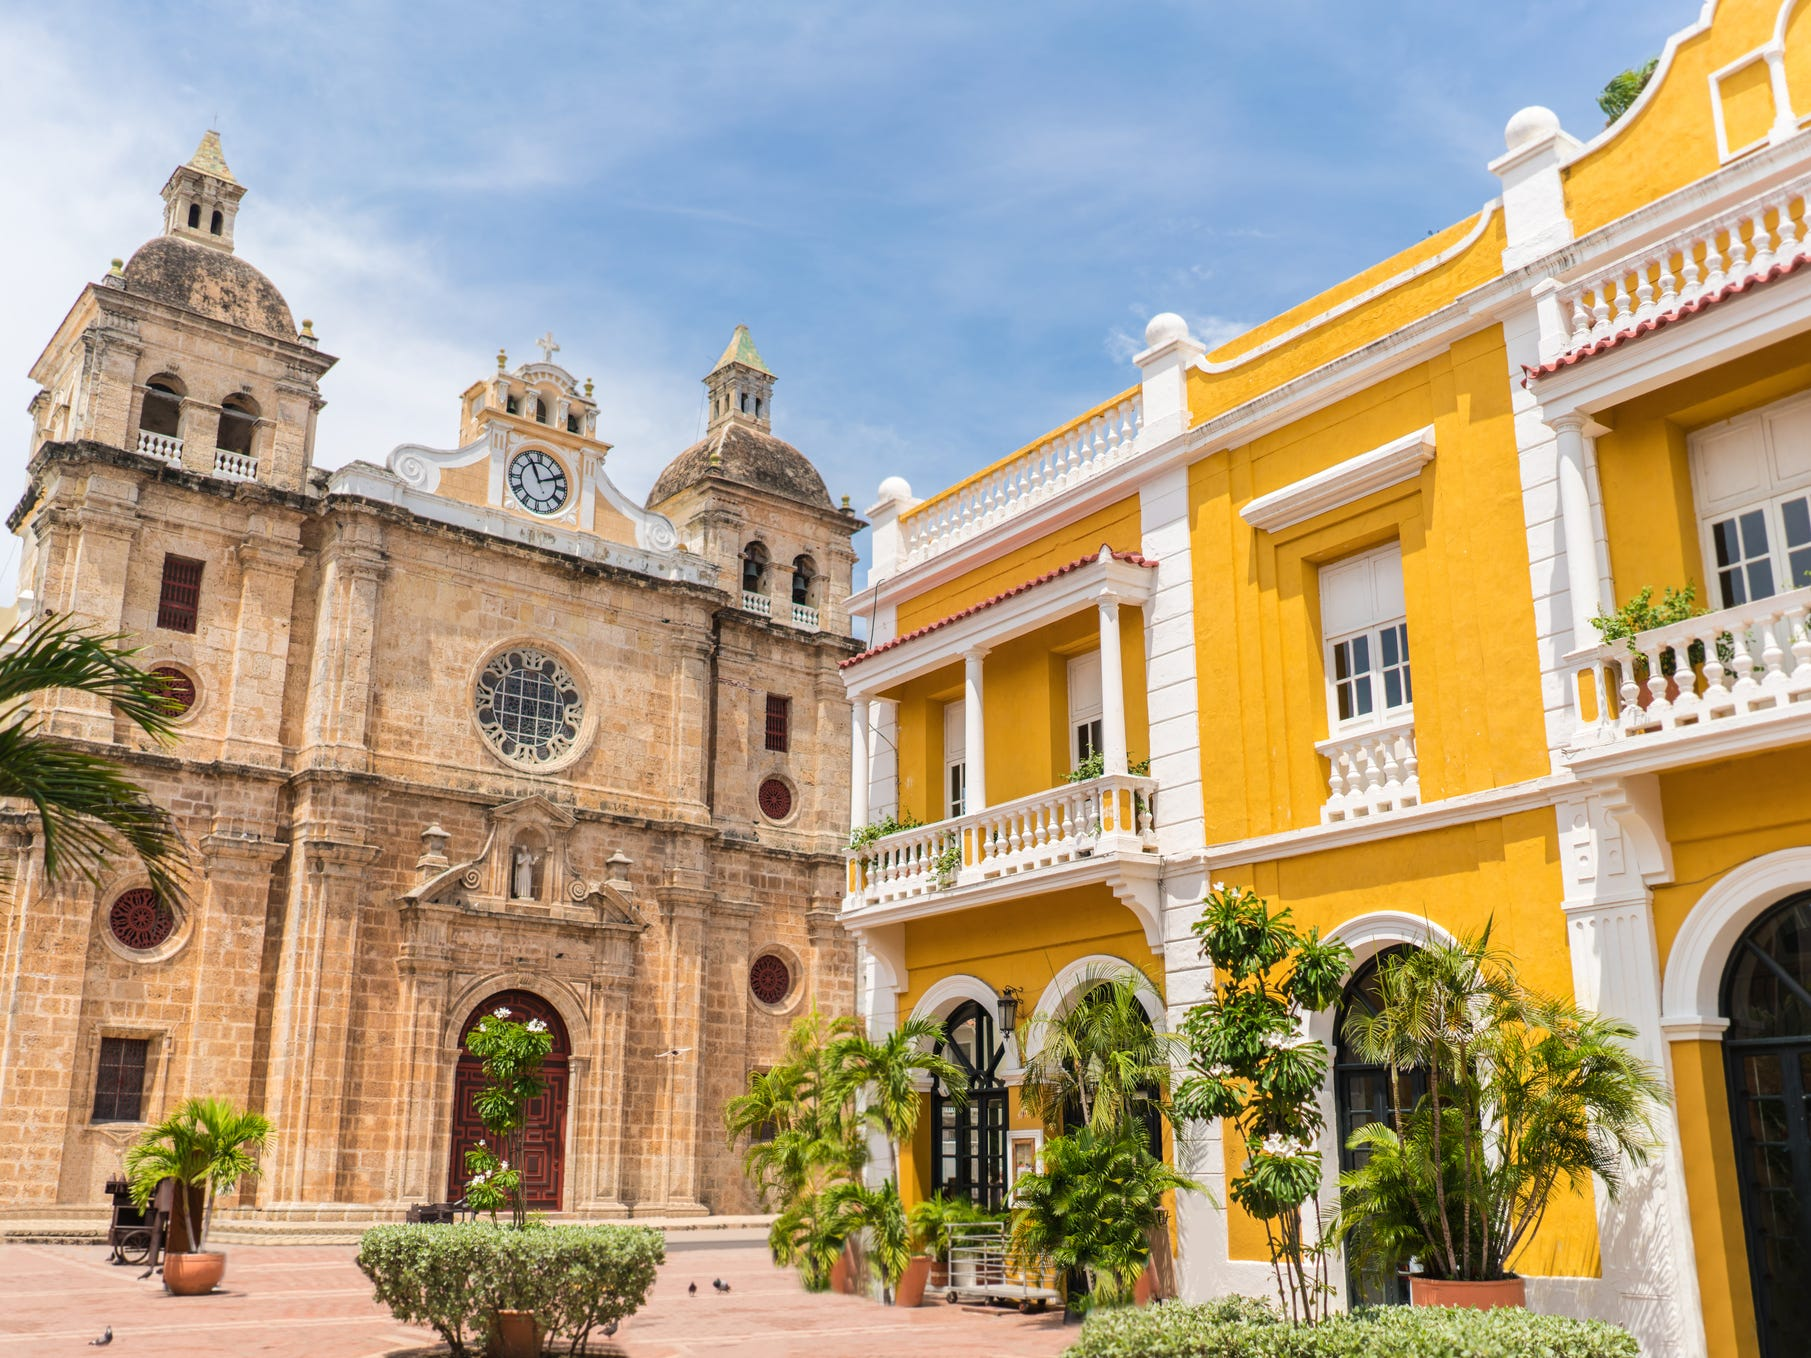 Cartagena, Colombia: Surrounded by sturdy stone walls, the historical center of Cartagena is a feast for the eyes.